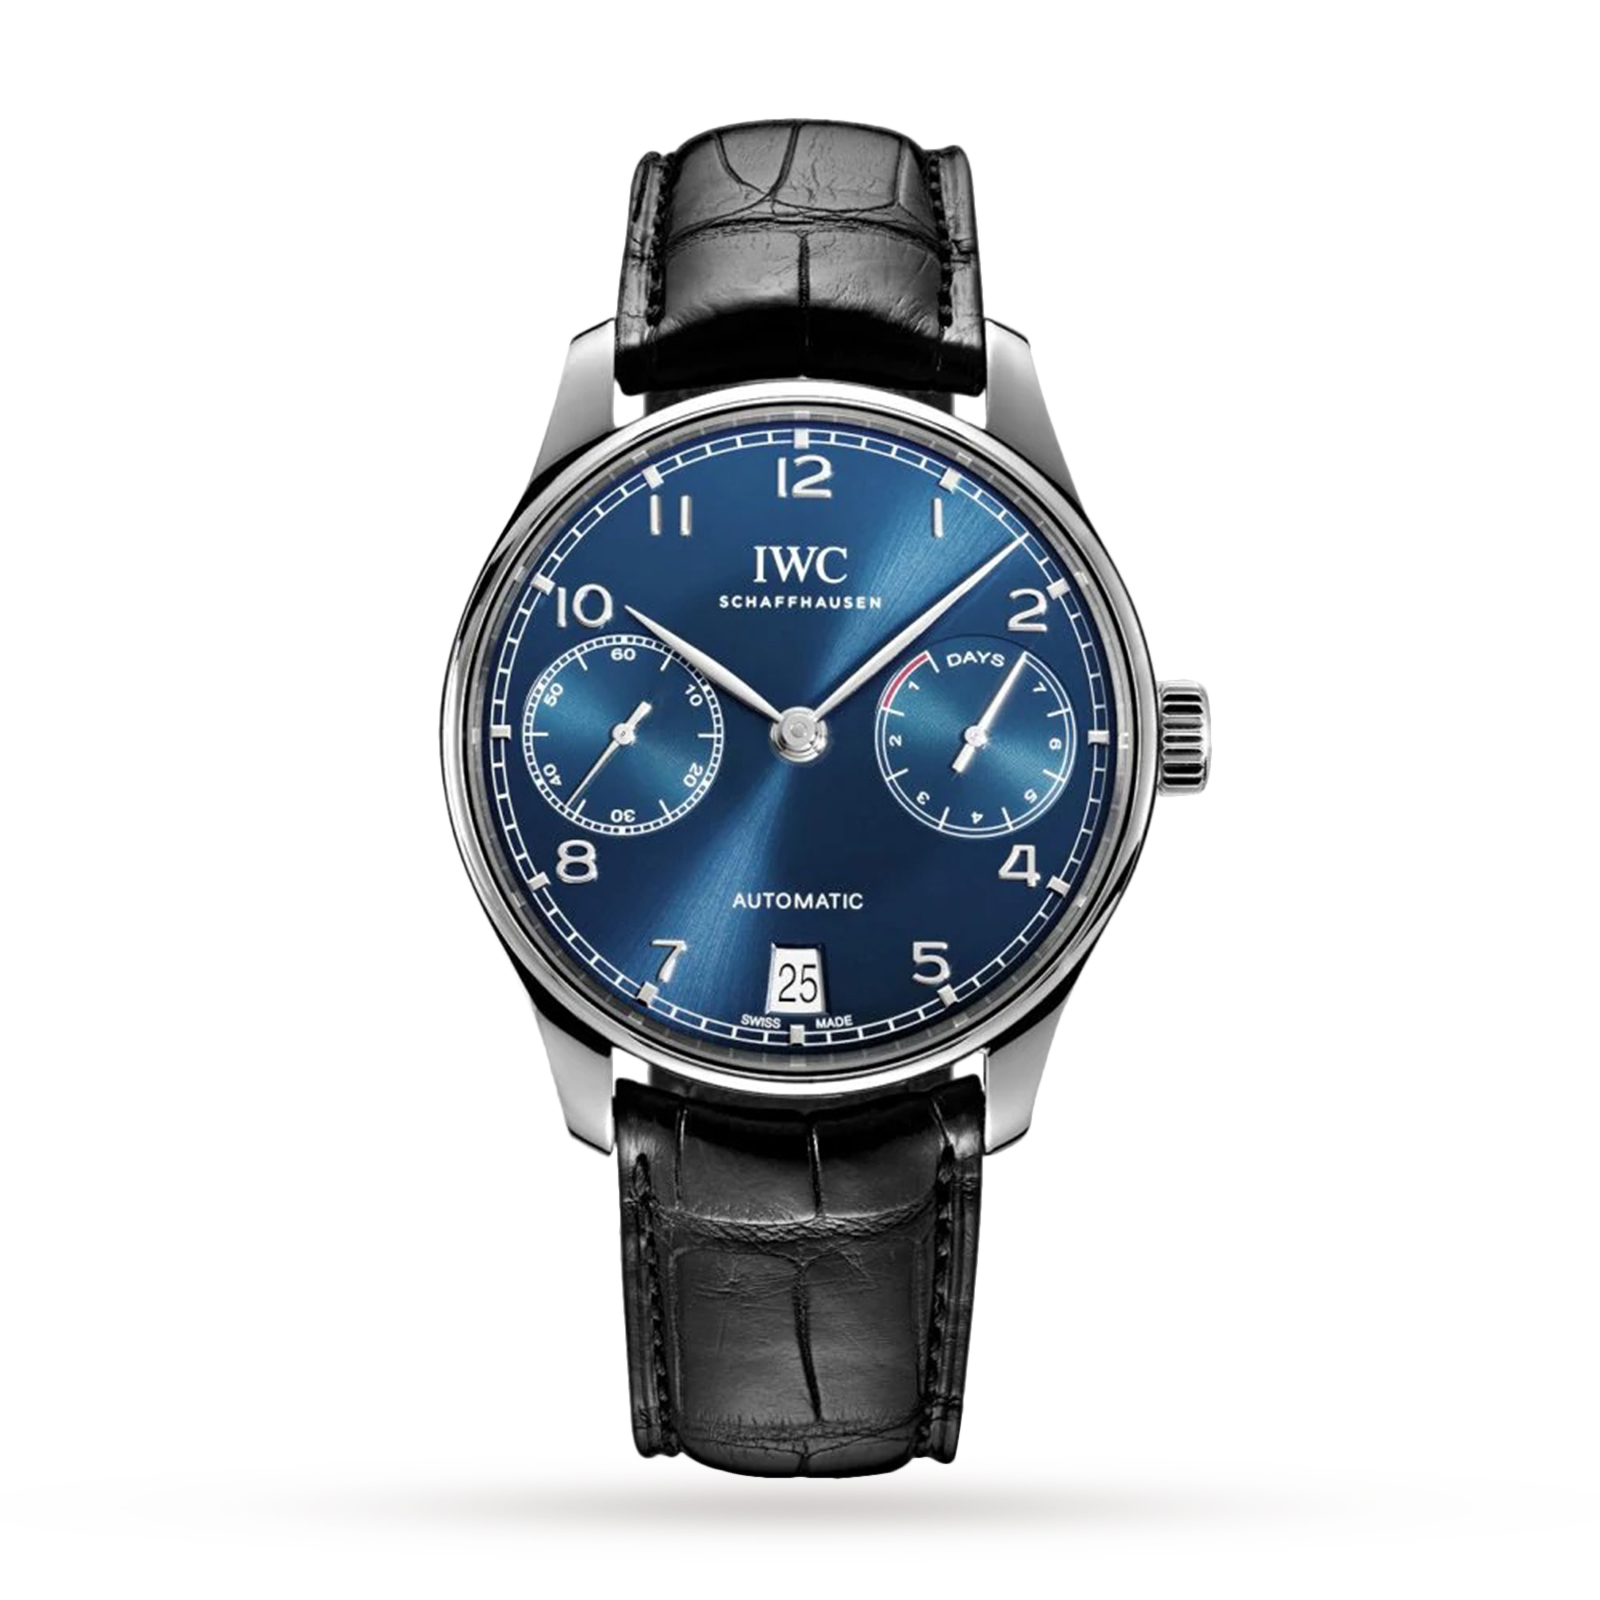 IWC Portugieser Mens Watch